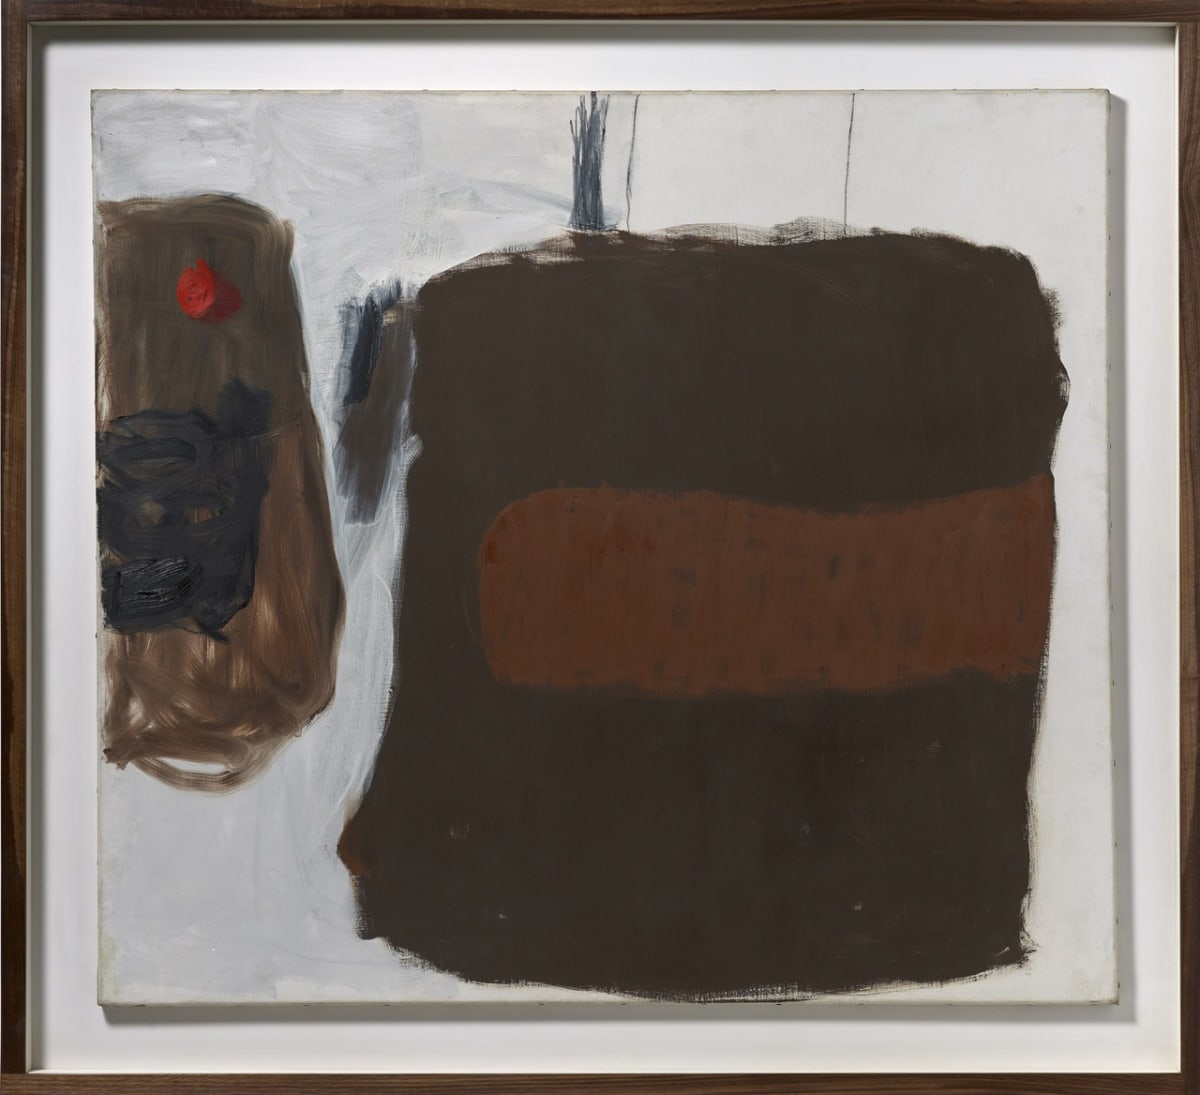 Roger HILTON (1911-1975) Untitled, 1962 Oil on canvas 44 x 50 inches / 111.8 x 127 cm Signed 'Hilton' and dated 'Oct, 62' verso